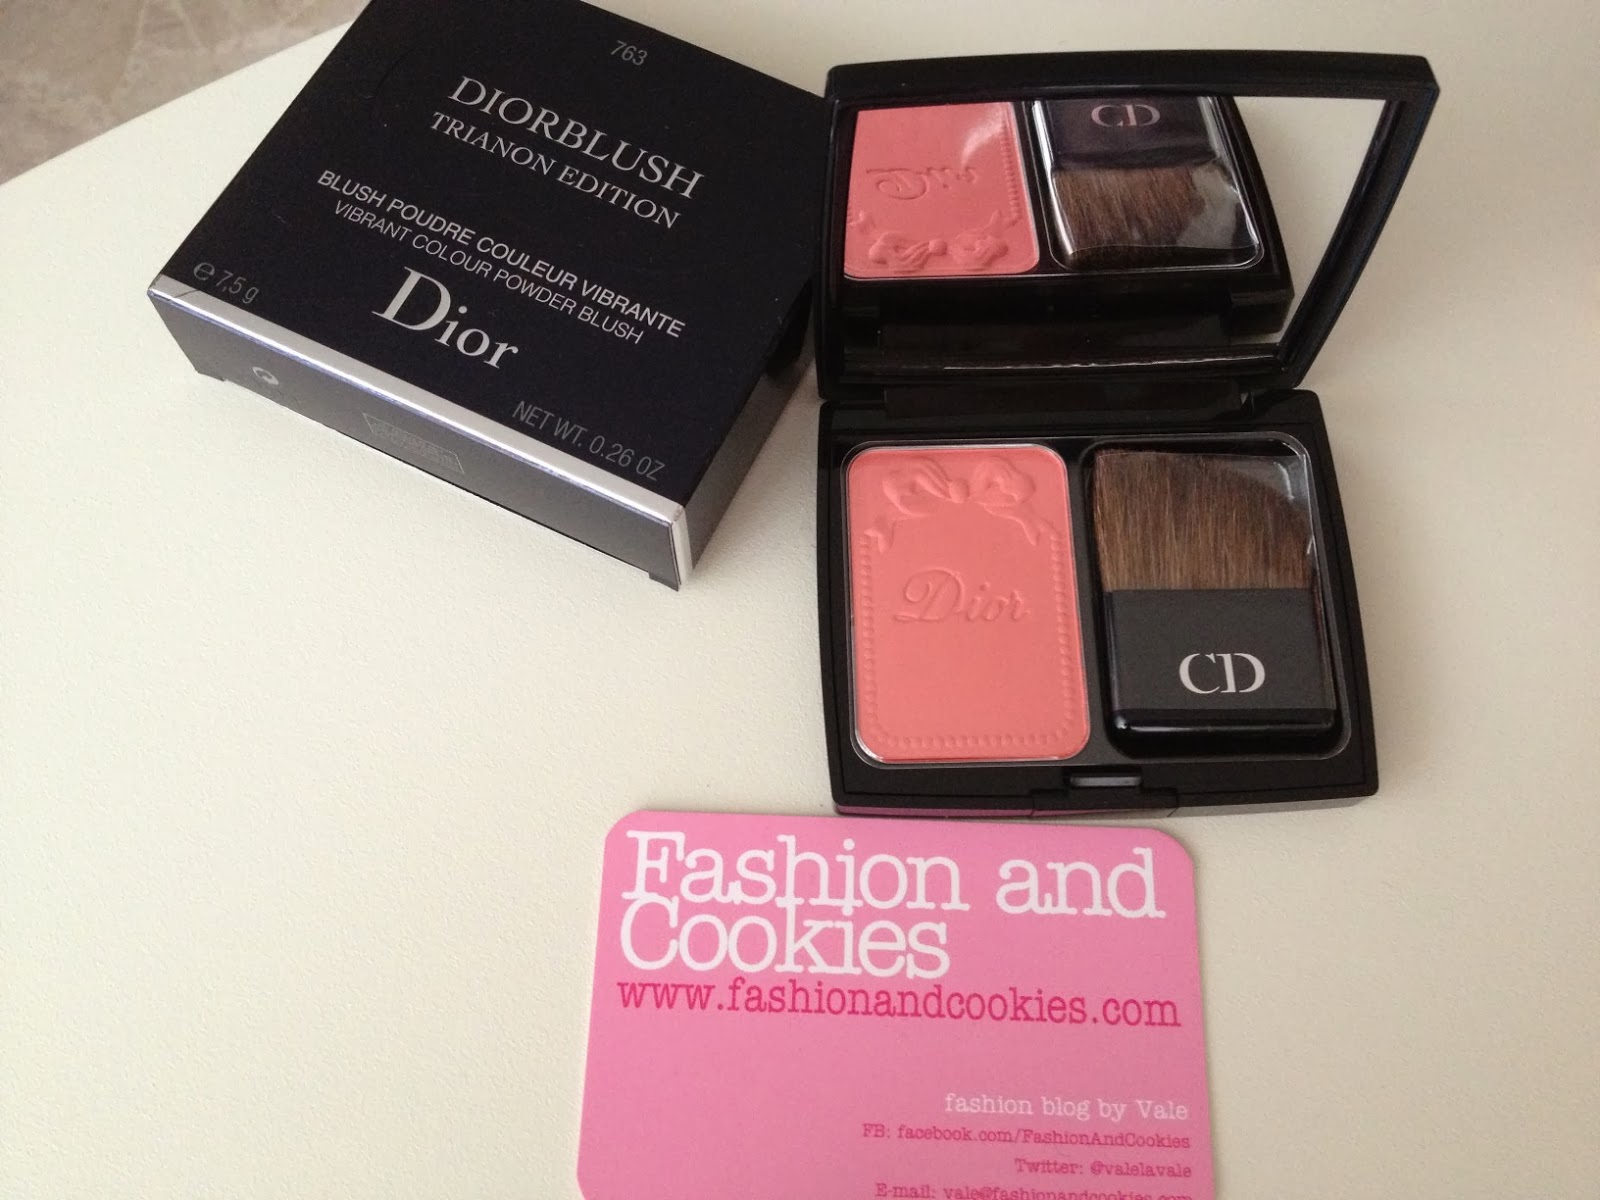 Dior Trianon Collection Spring 2014, Diorblush 763 corail bagatelle, Fashion and Cookies